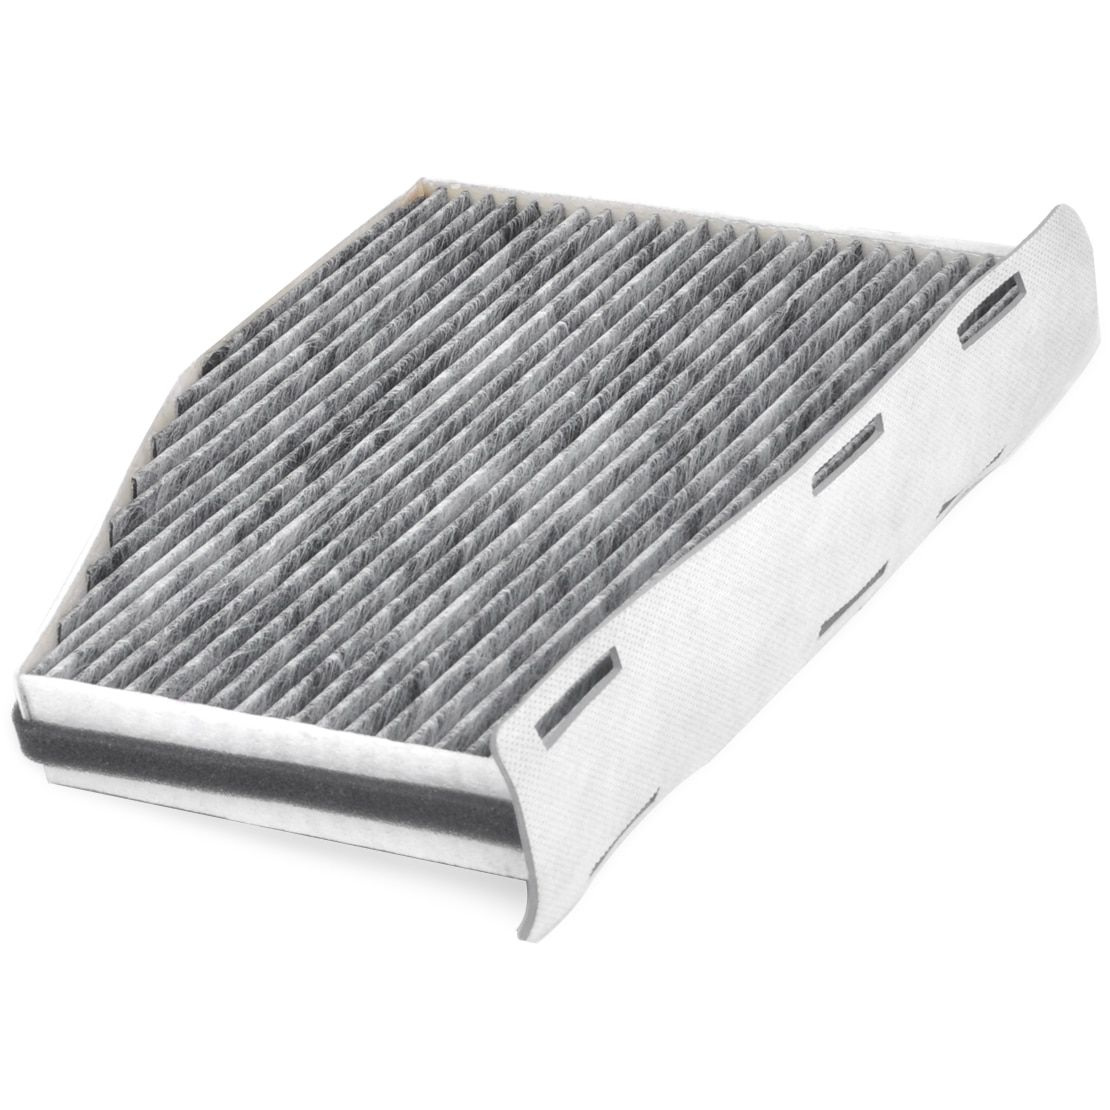 DWCX Car Carbon Fiber Cabin Air Filter 1K1 819 653 A / 1K1 819 653 B 1K1819653B for VW Passat Jetta GTI Golf Beetle Audi A3 TT